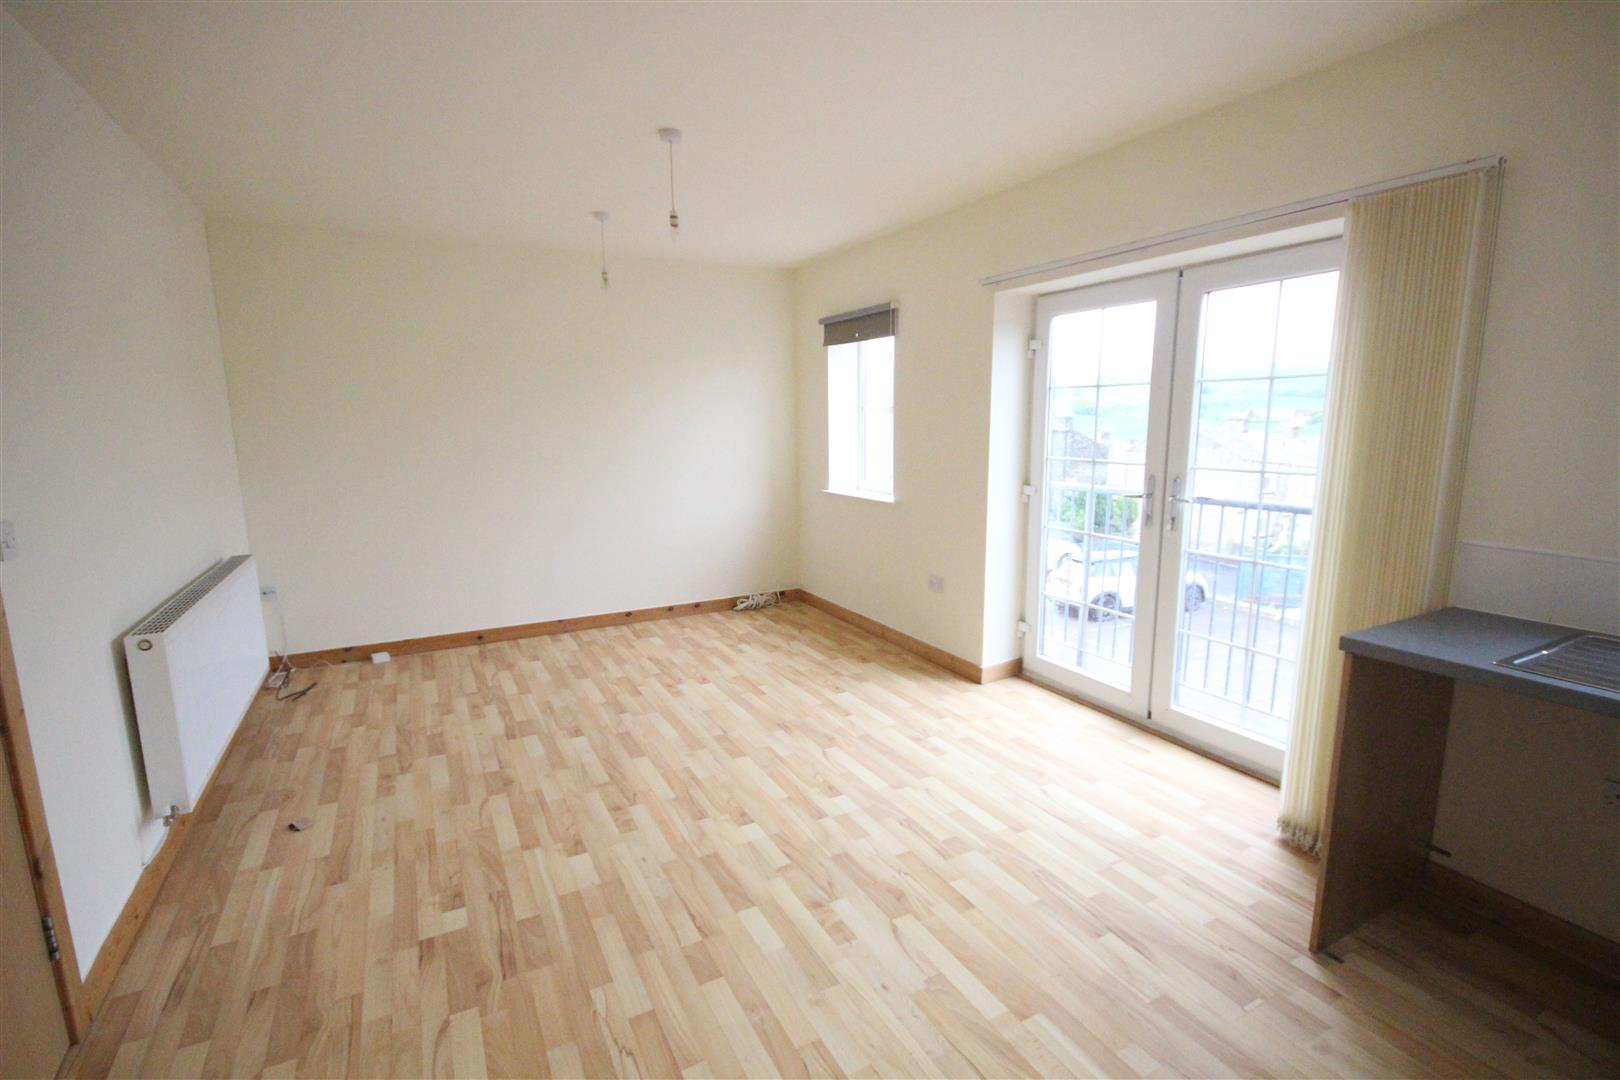 2 bedroom bungalow For Sale in Colne - IMG_0801.JPG